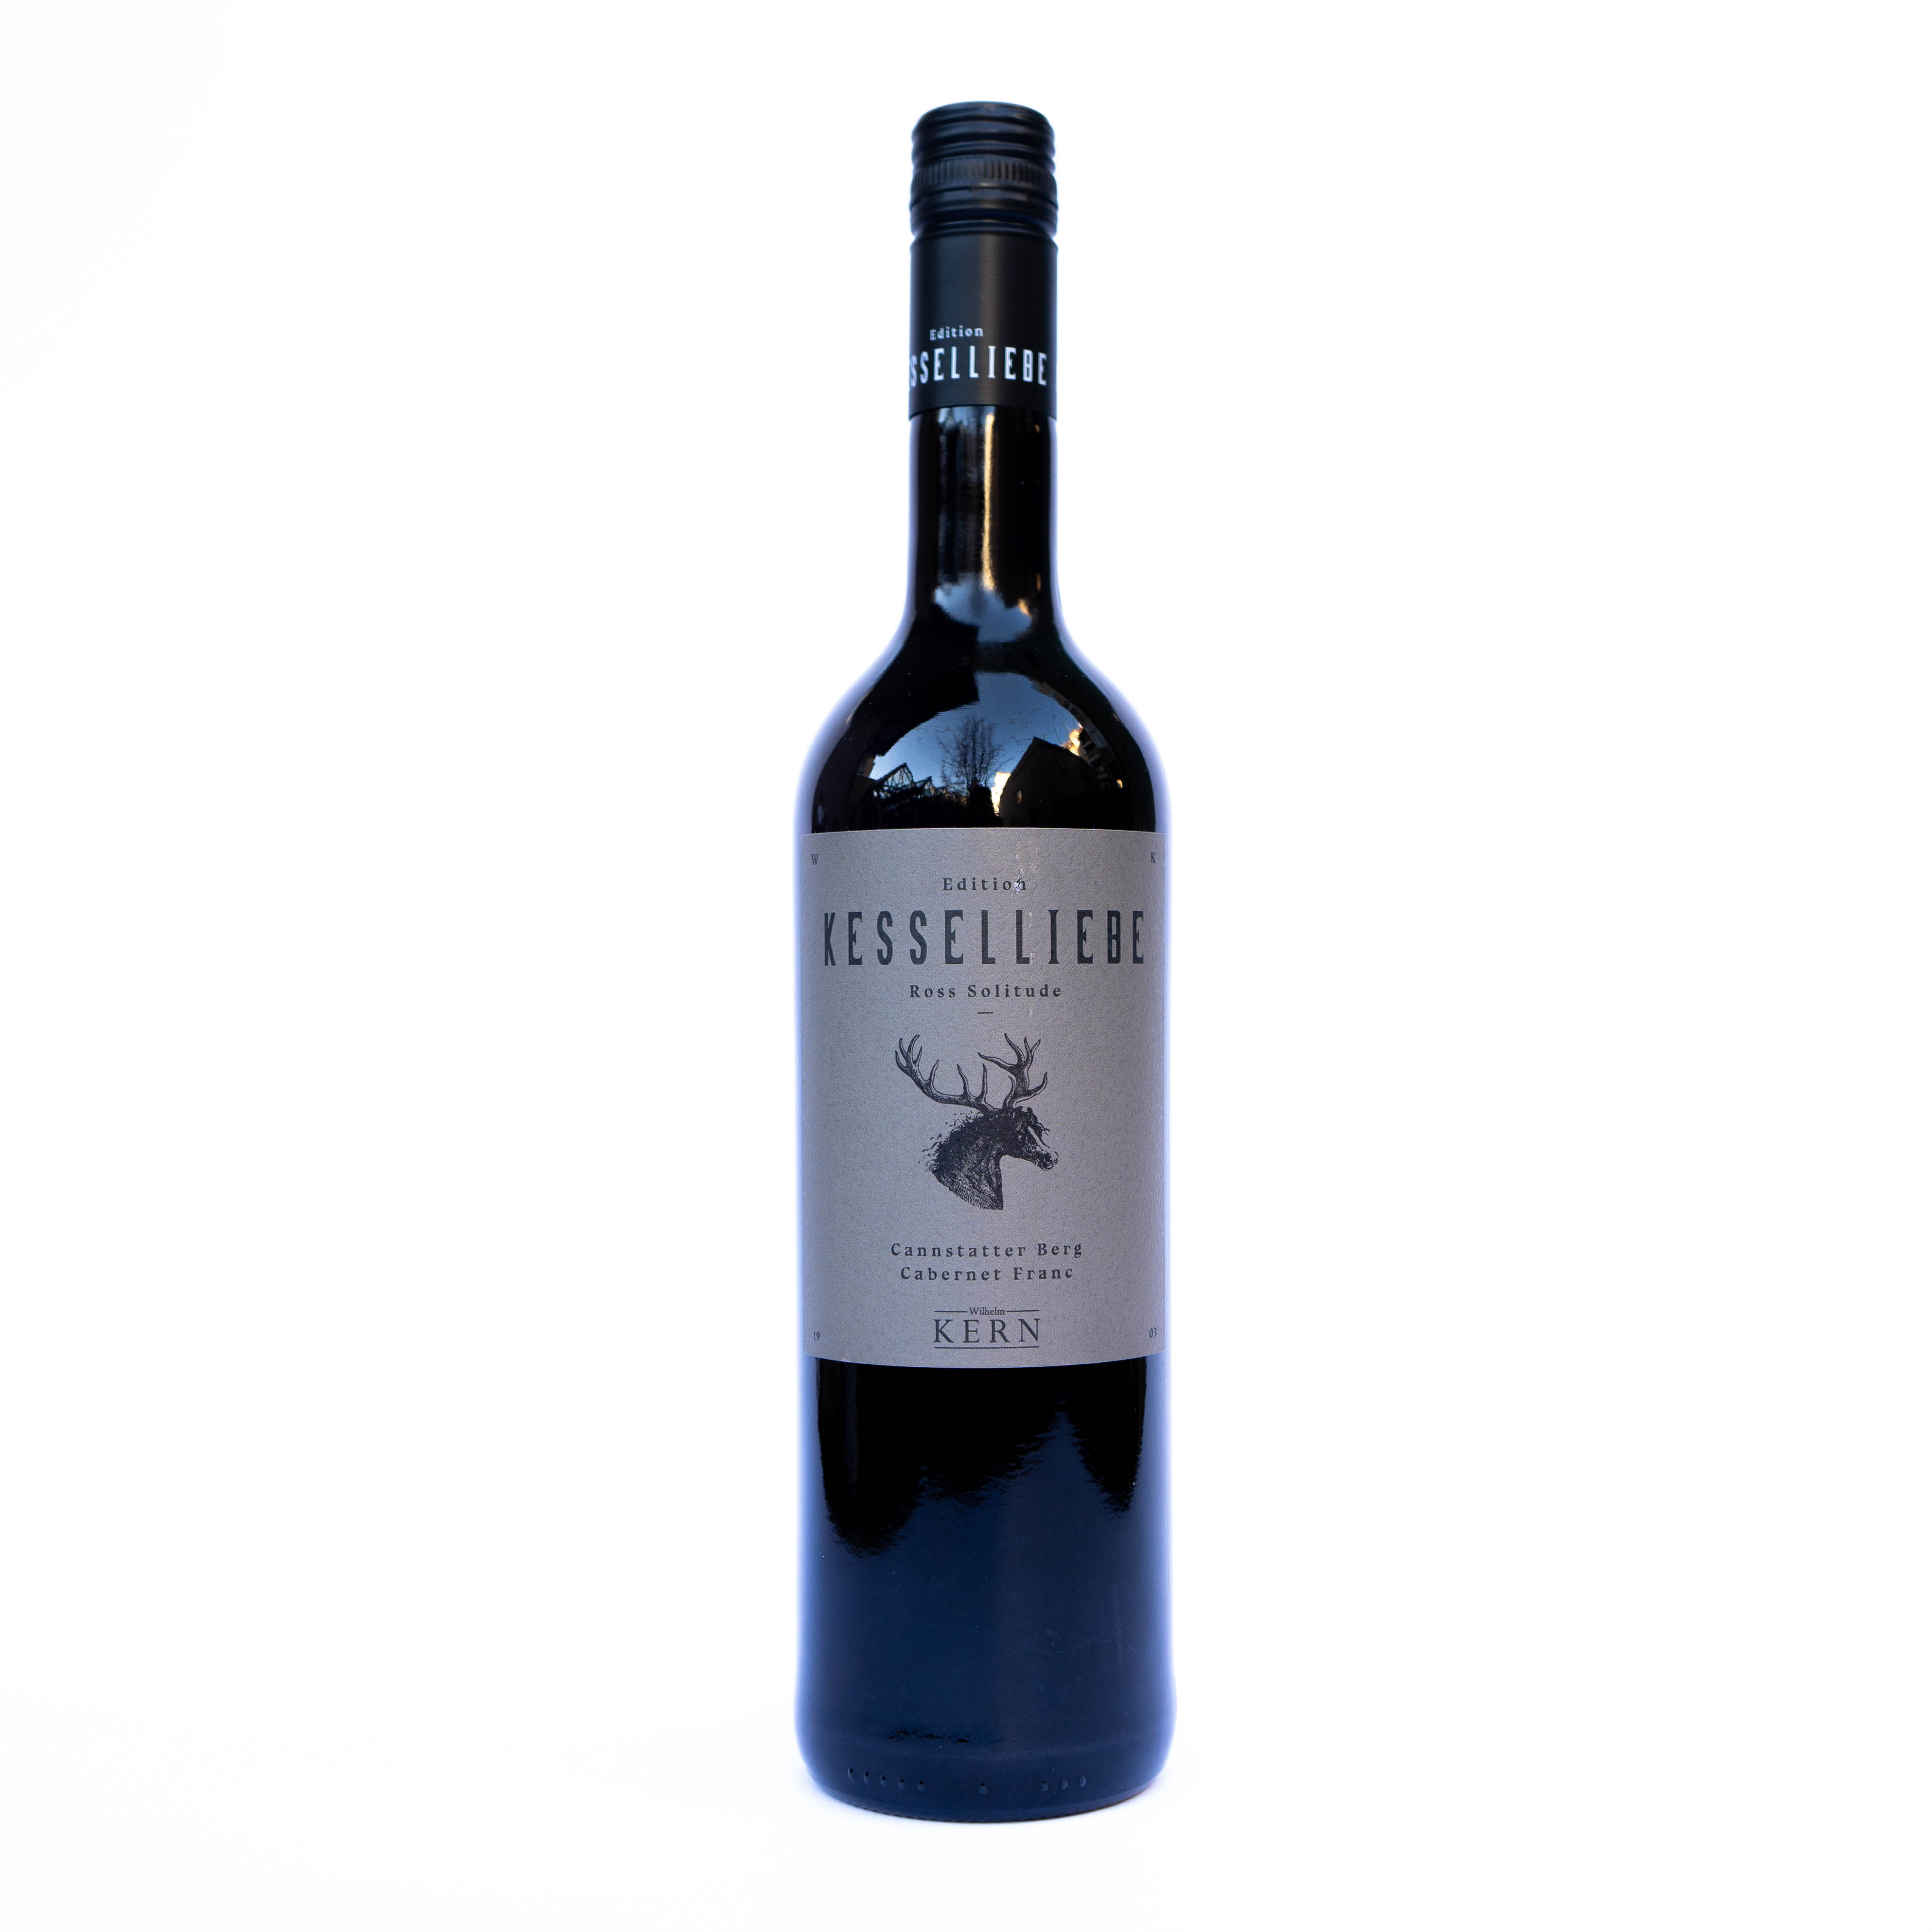 Ross Solitude Cabernet Franc  Edition Kesselliebe